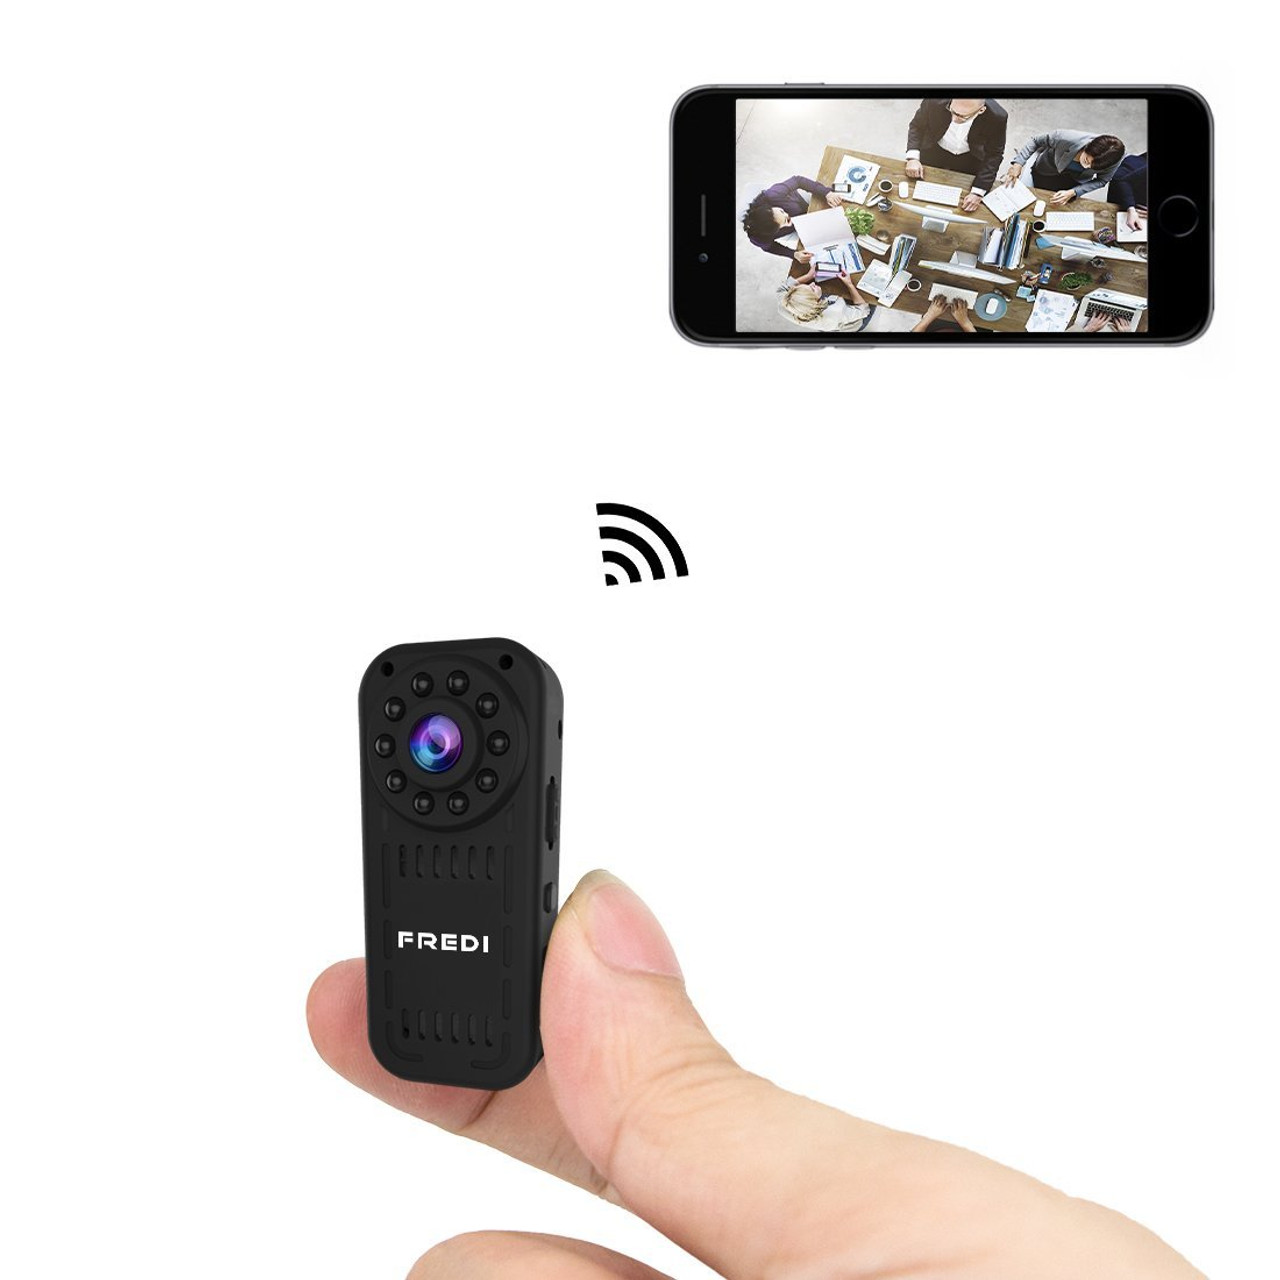 Part 1. Best 5 Wi-Fi Spy Camera for iPhone